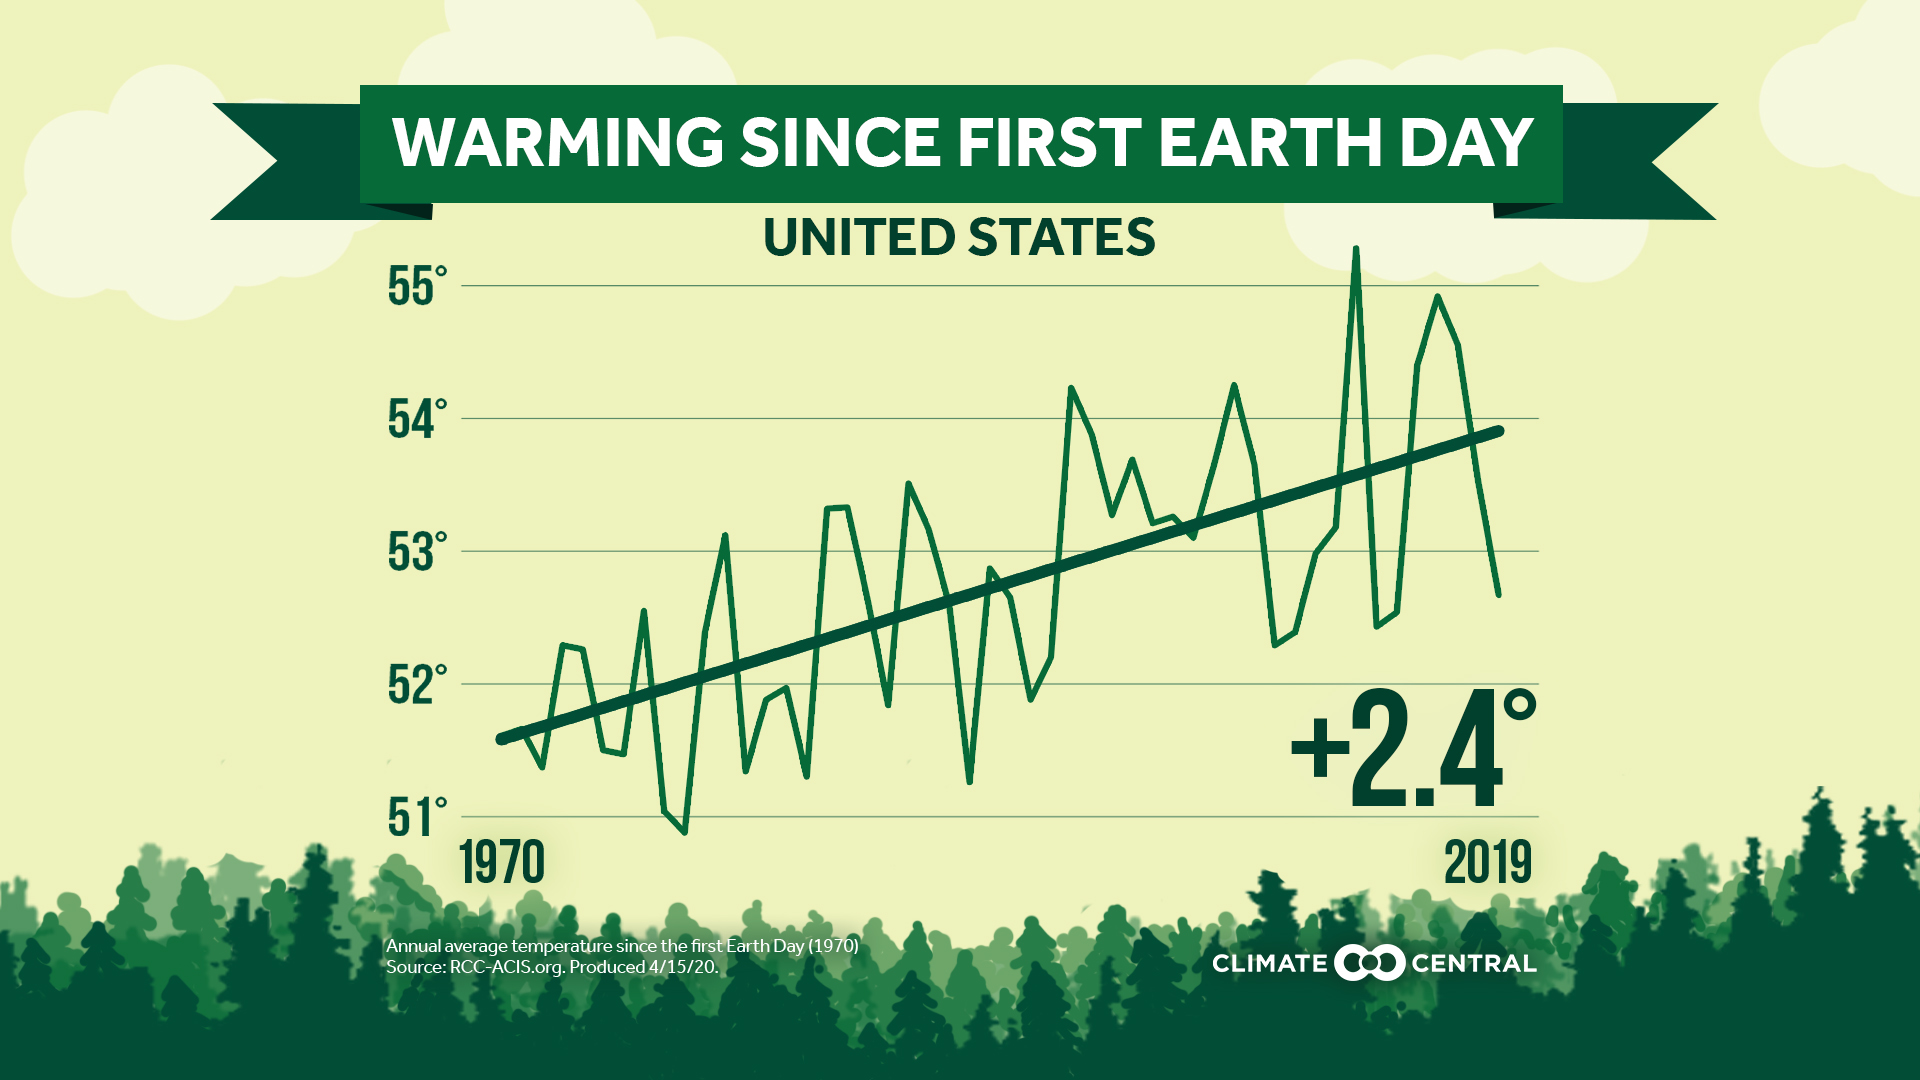 National: Earth Day annual average temperature trend for the contiguous U.S.